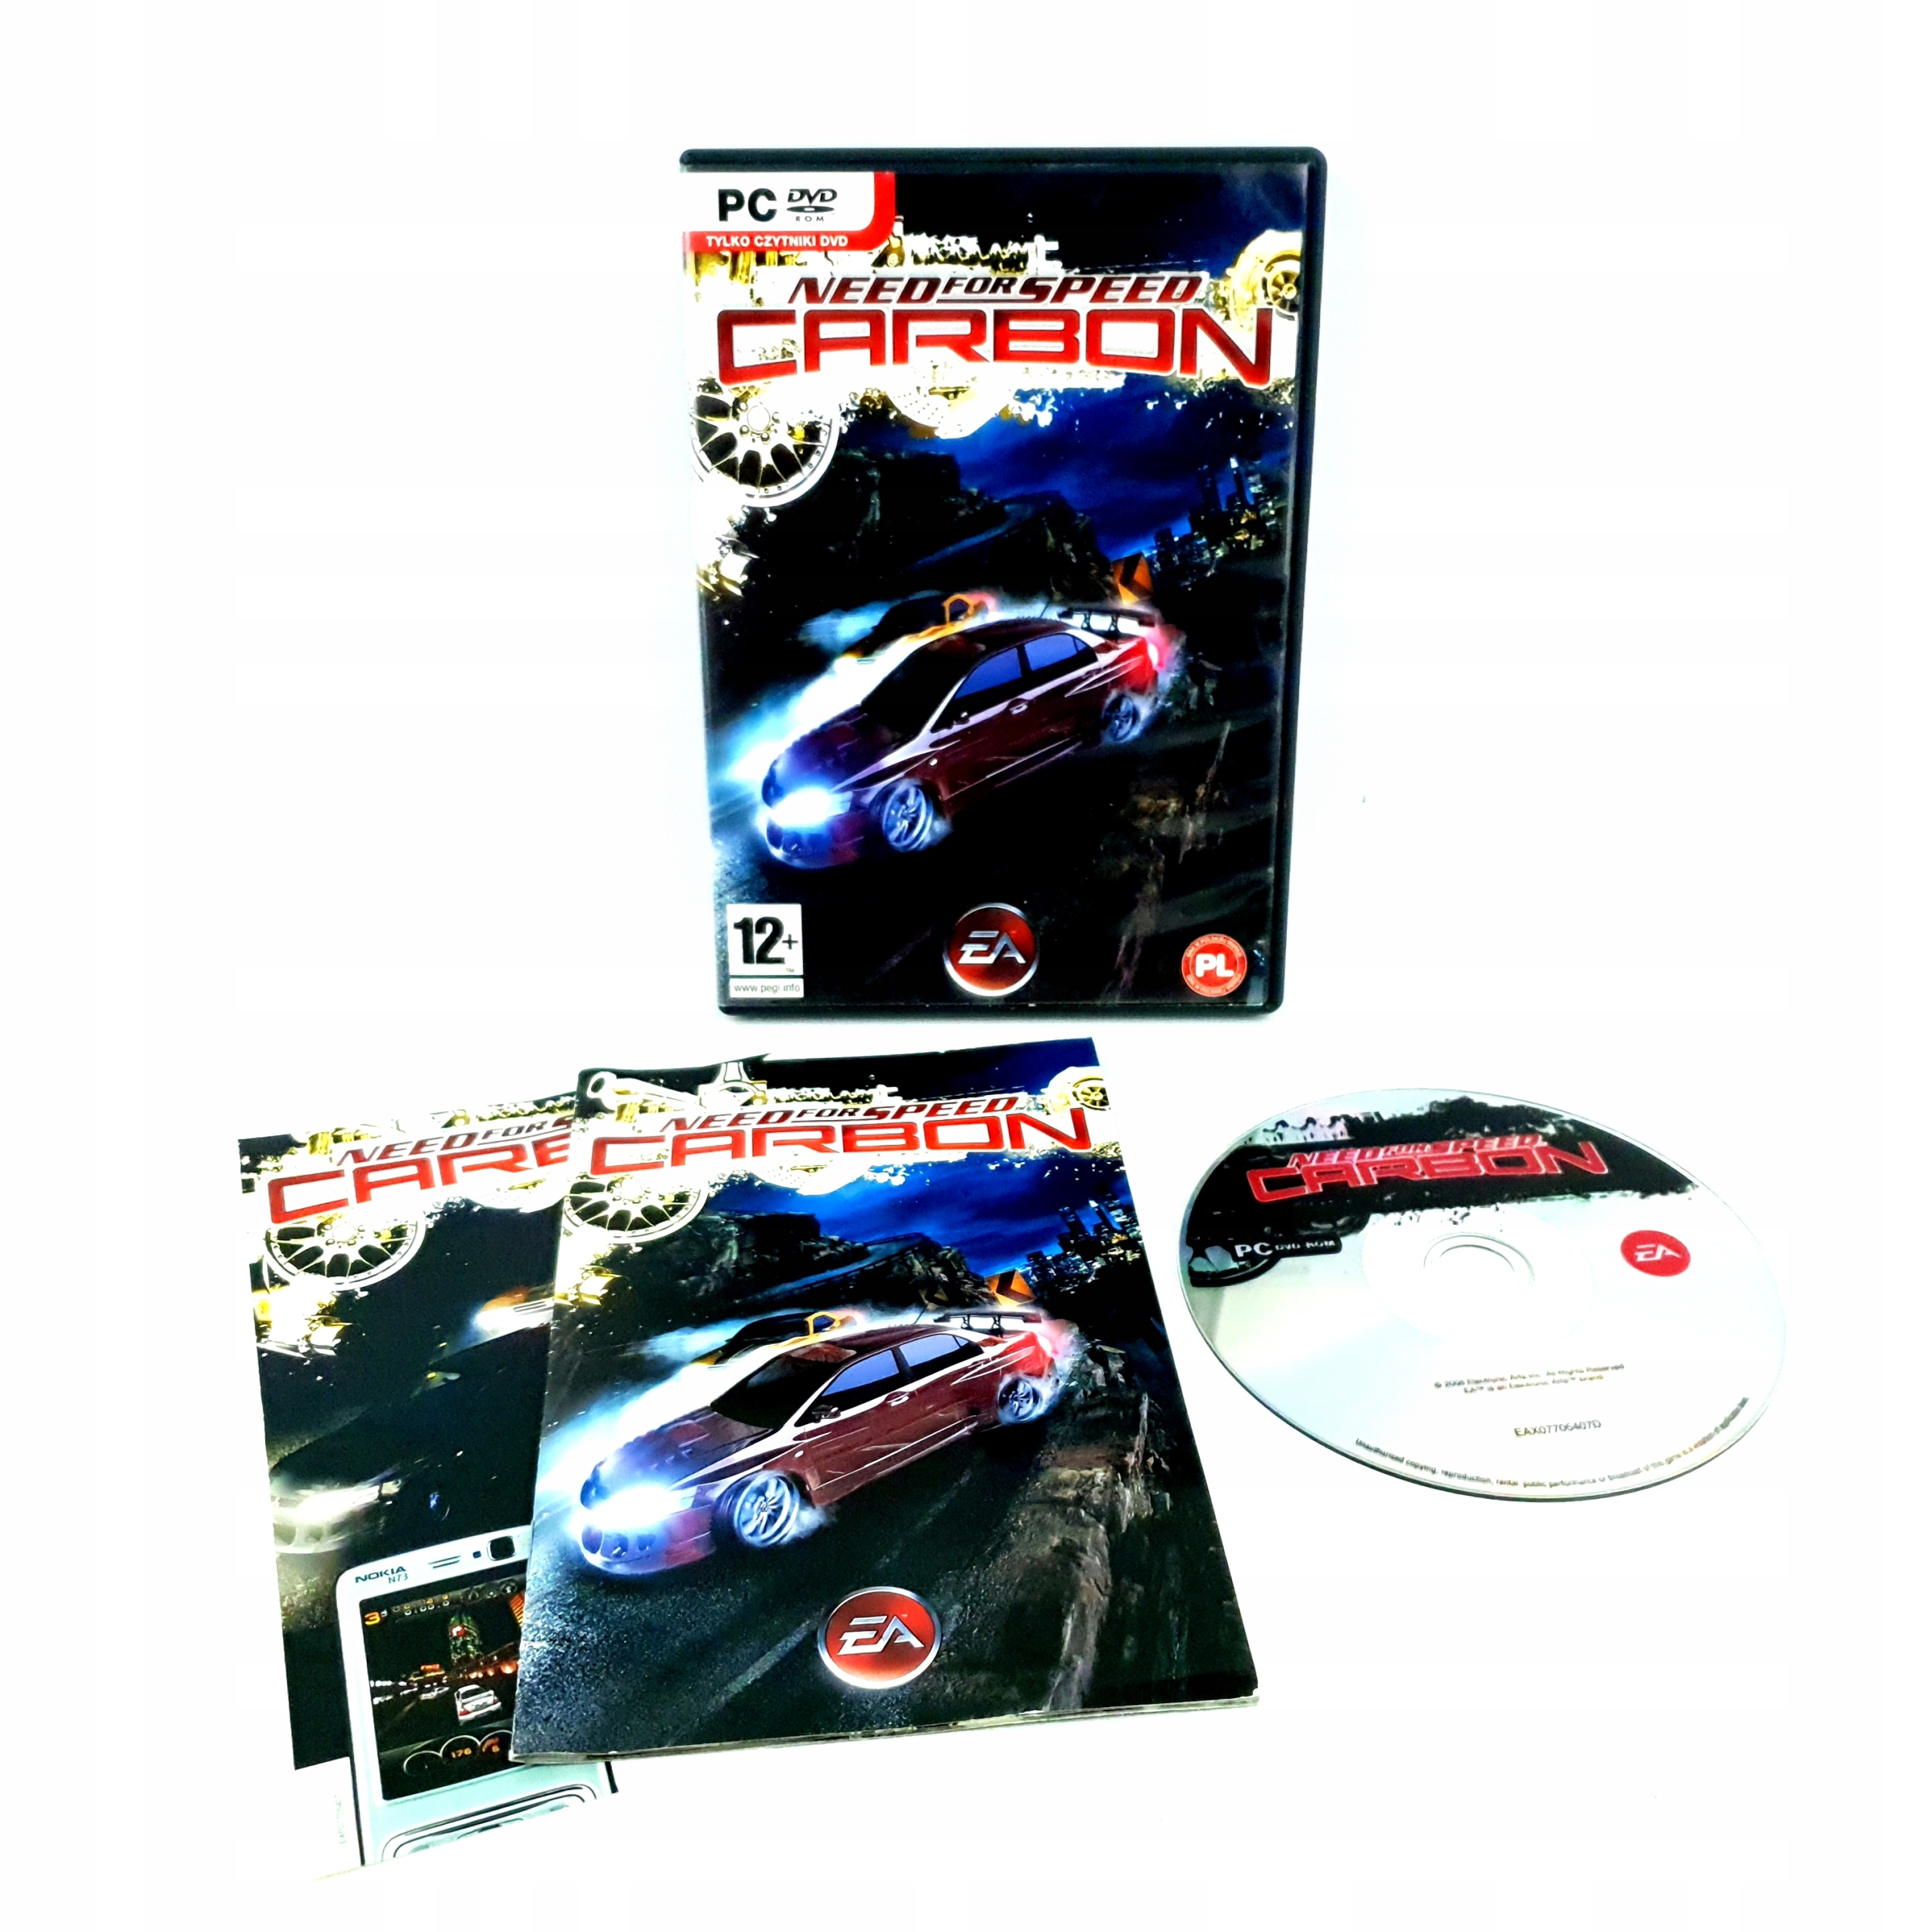 IDEAŁ 6-/6 NEED FOR SPEED CARBON NFS PC POLSKIE PL